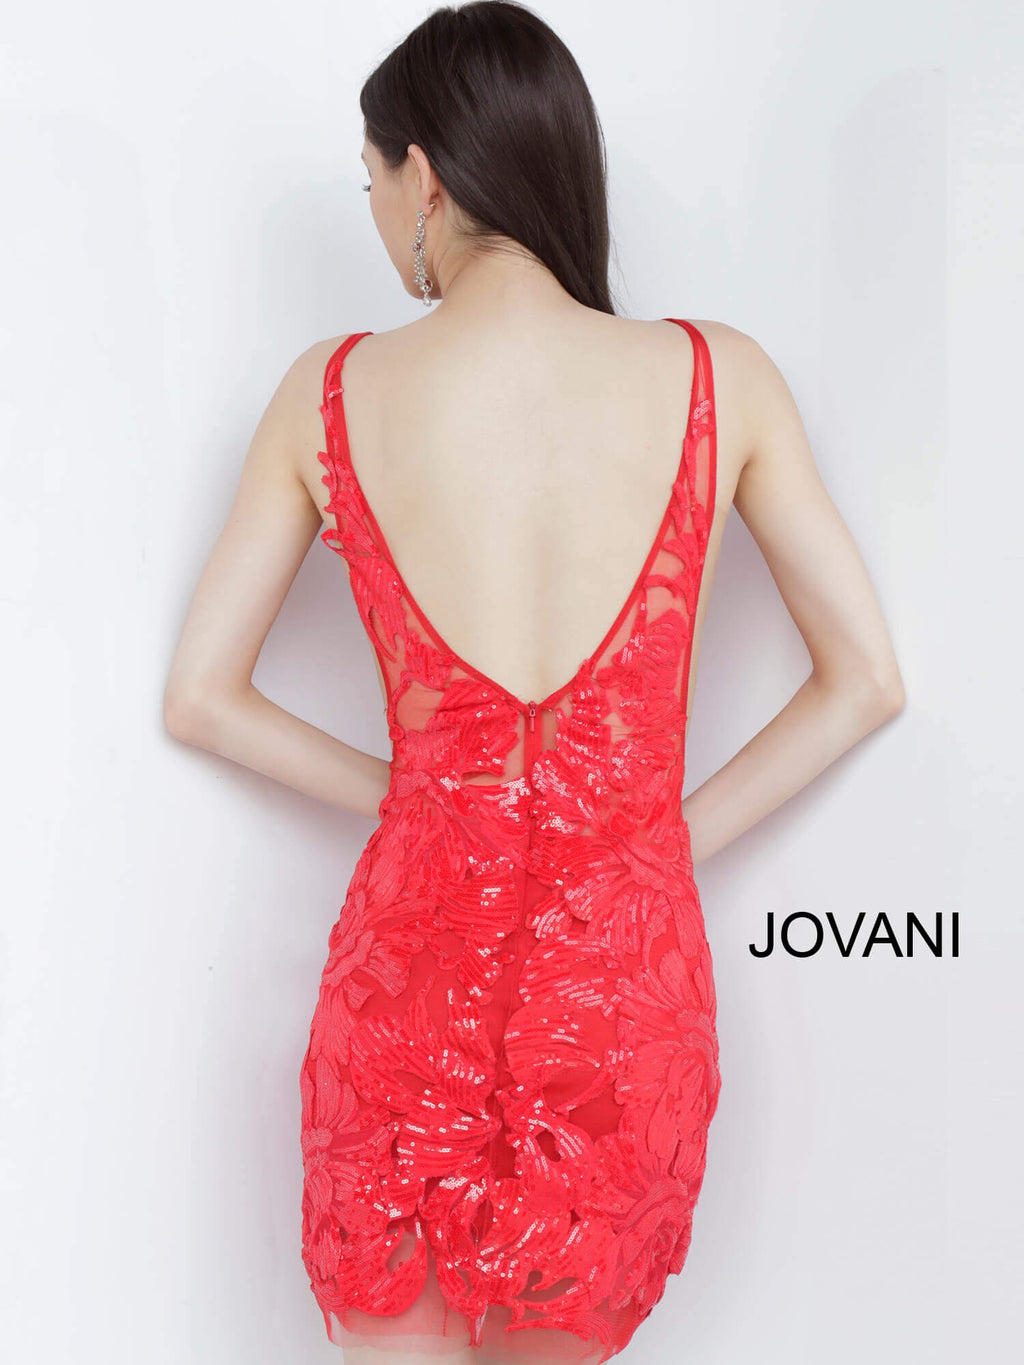 JOVANI 4552 Embellished Cocktail Dress - CYC Boutique